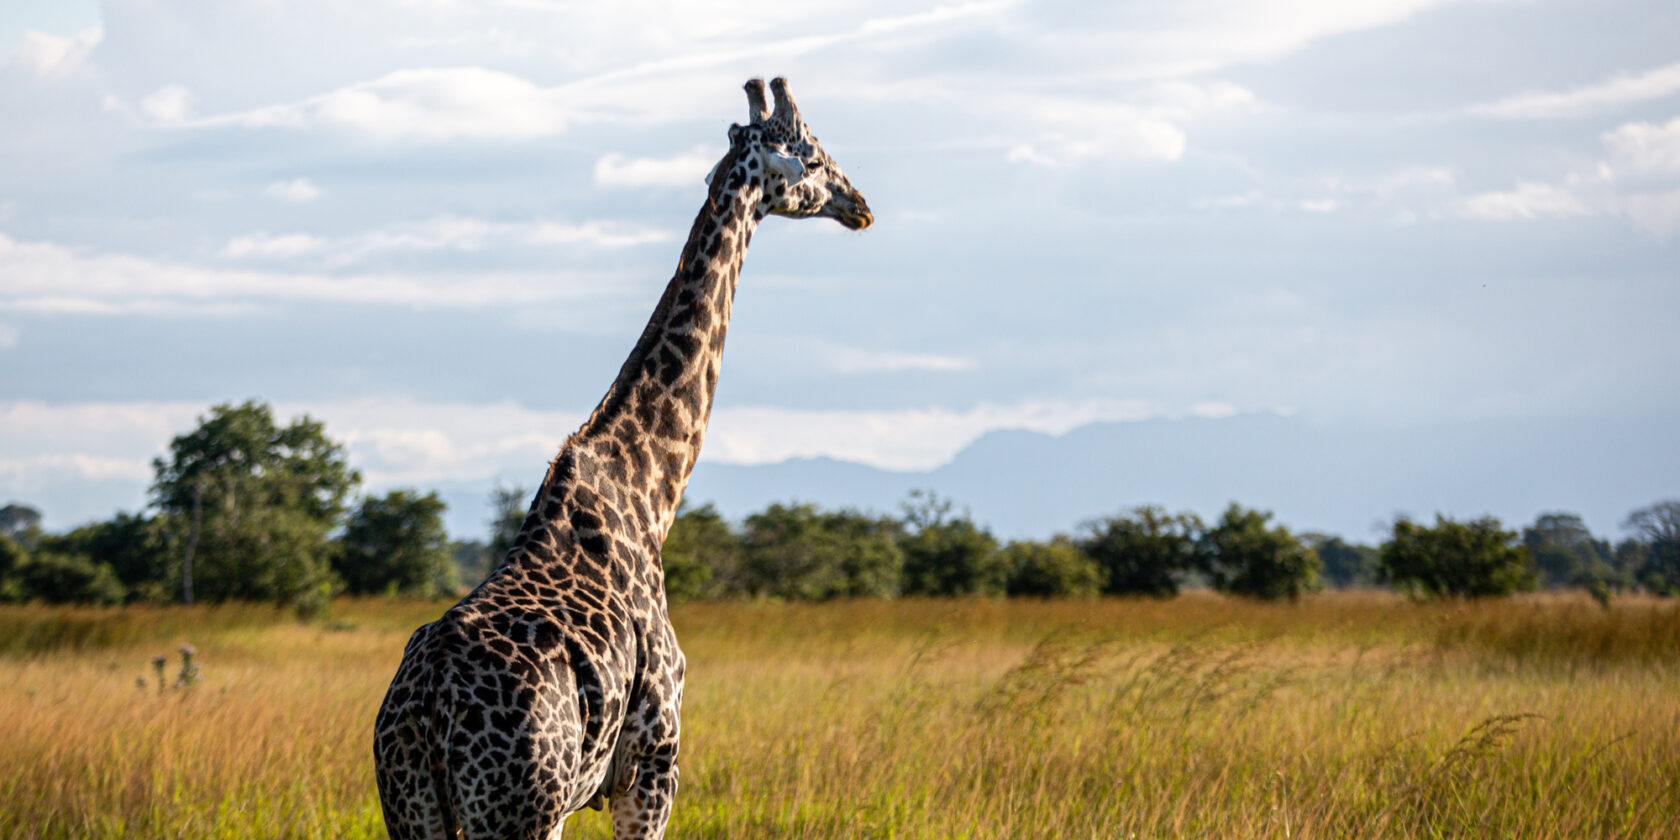 Giraff basking in the sun while standing in tall grass and bushes